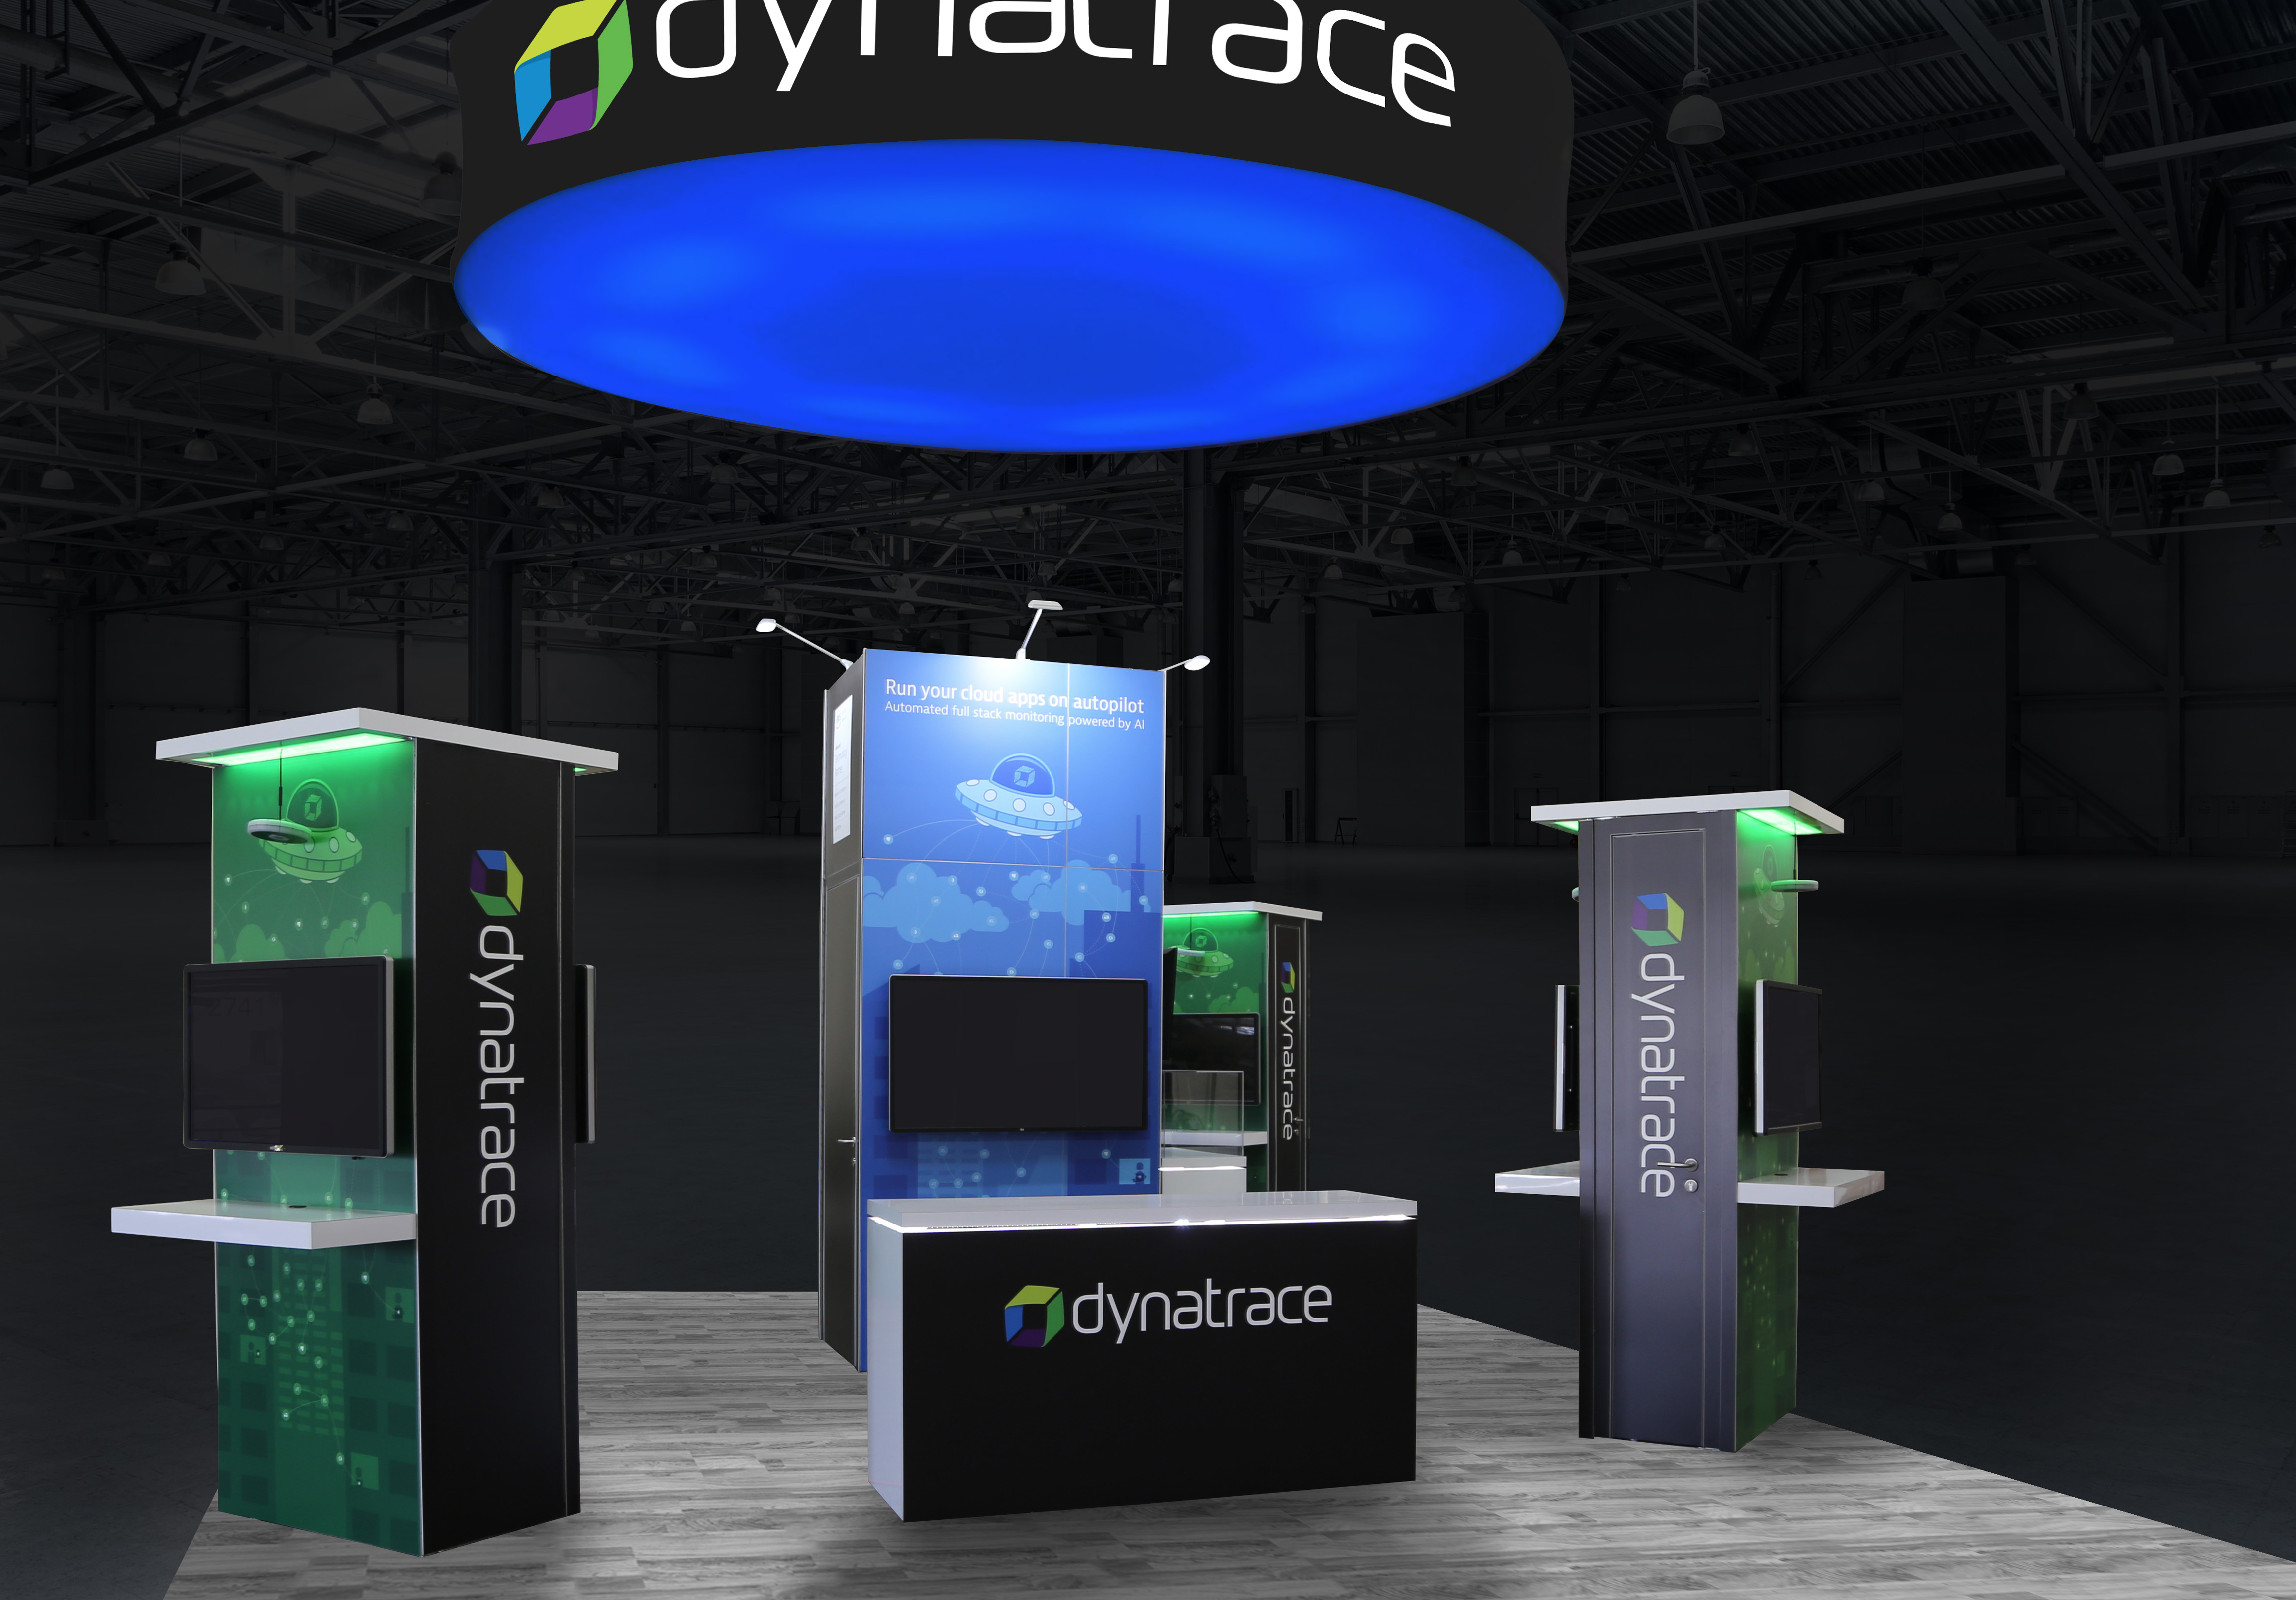 Custom Dynatrace island booth